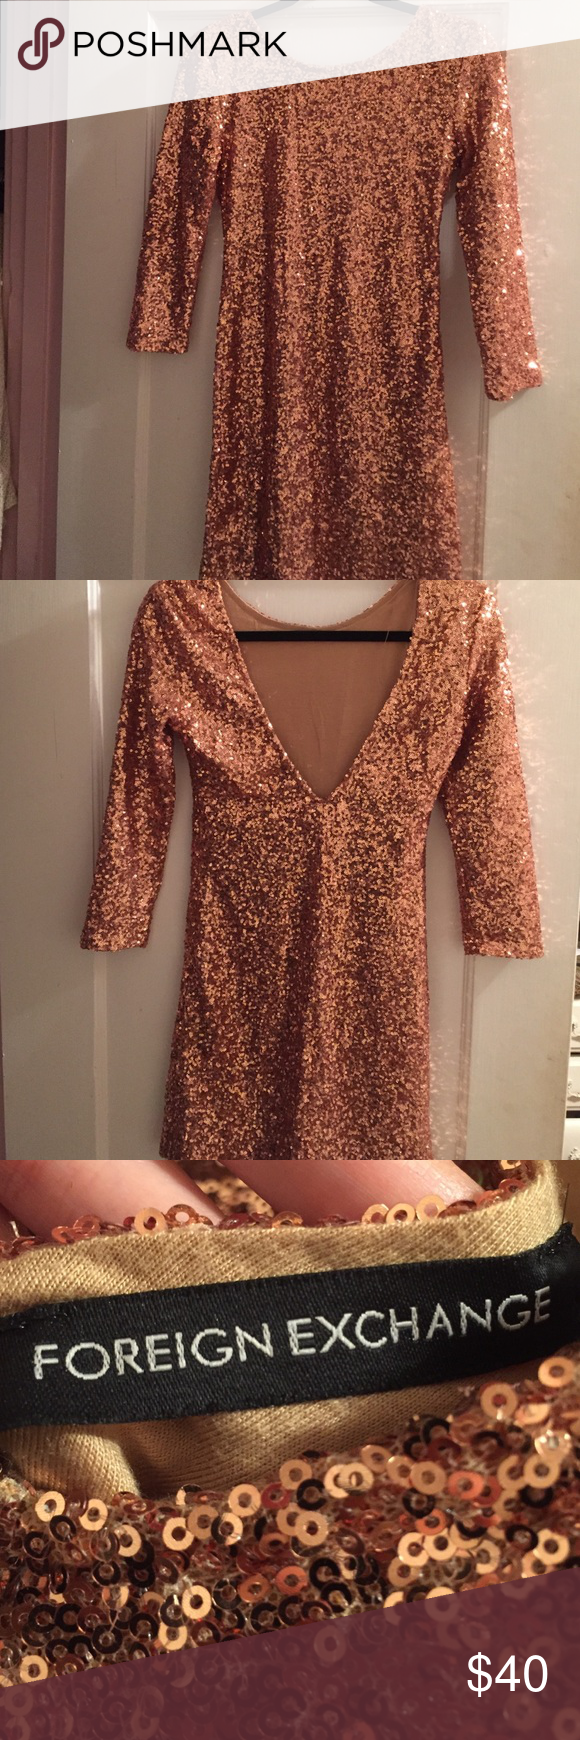 Sequin Mini Dress Perfect condition. Never worn. Perfect for a holiday party. Size S. Foreign Exchange Dresses Mini